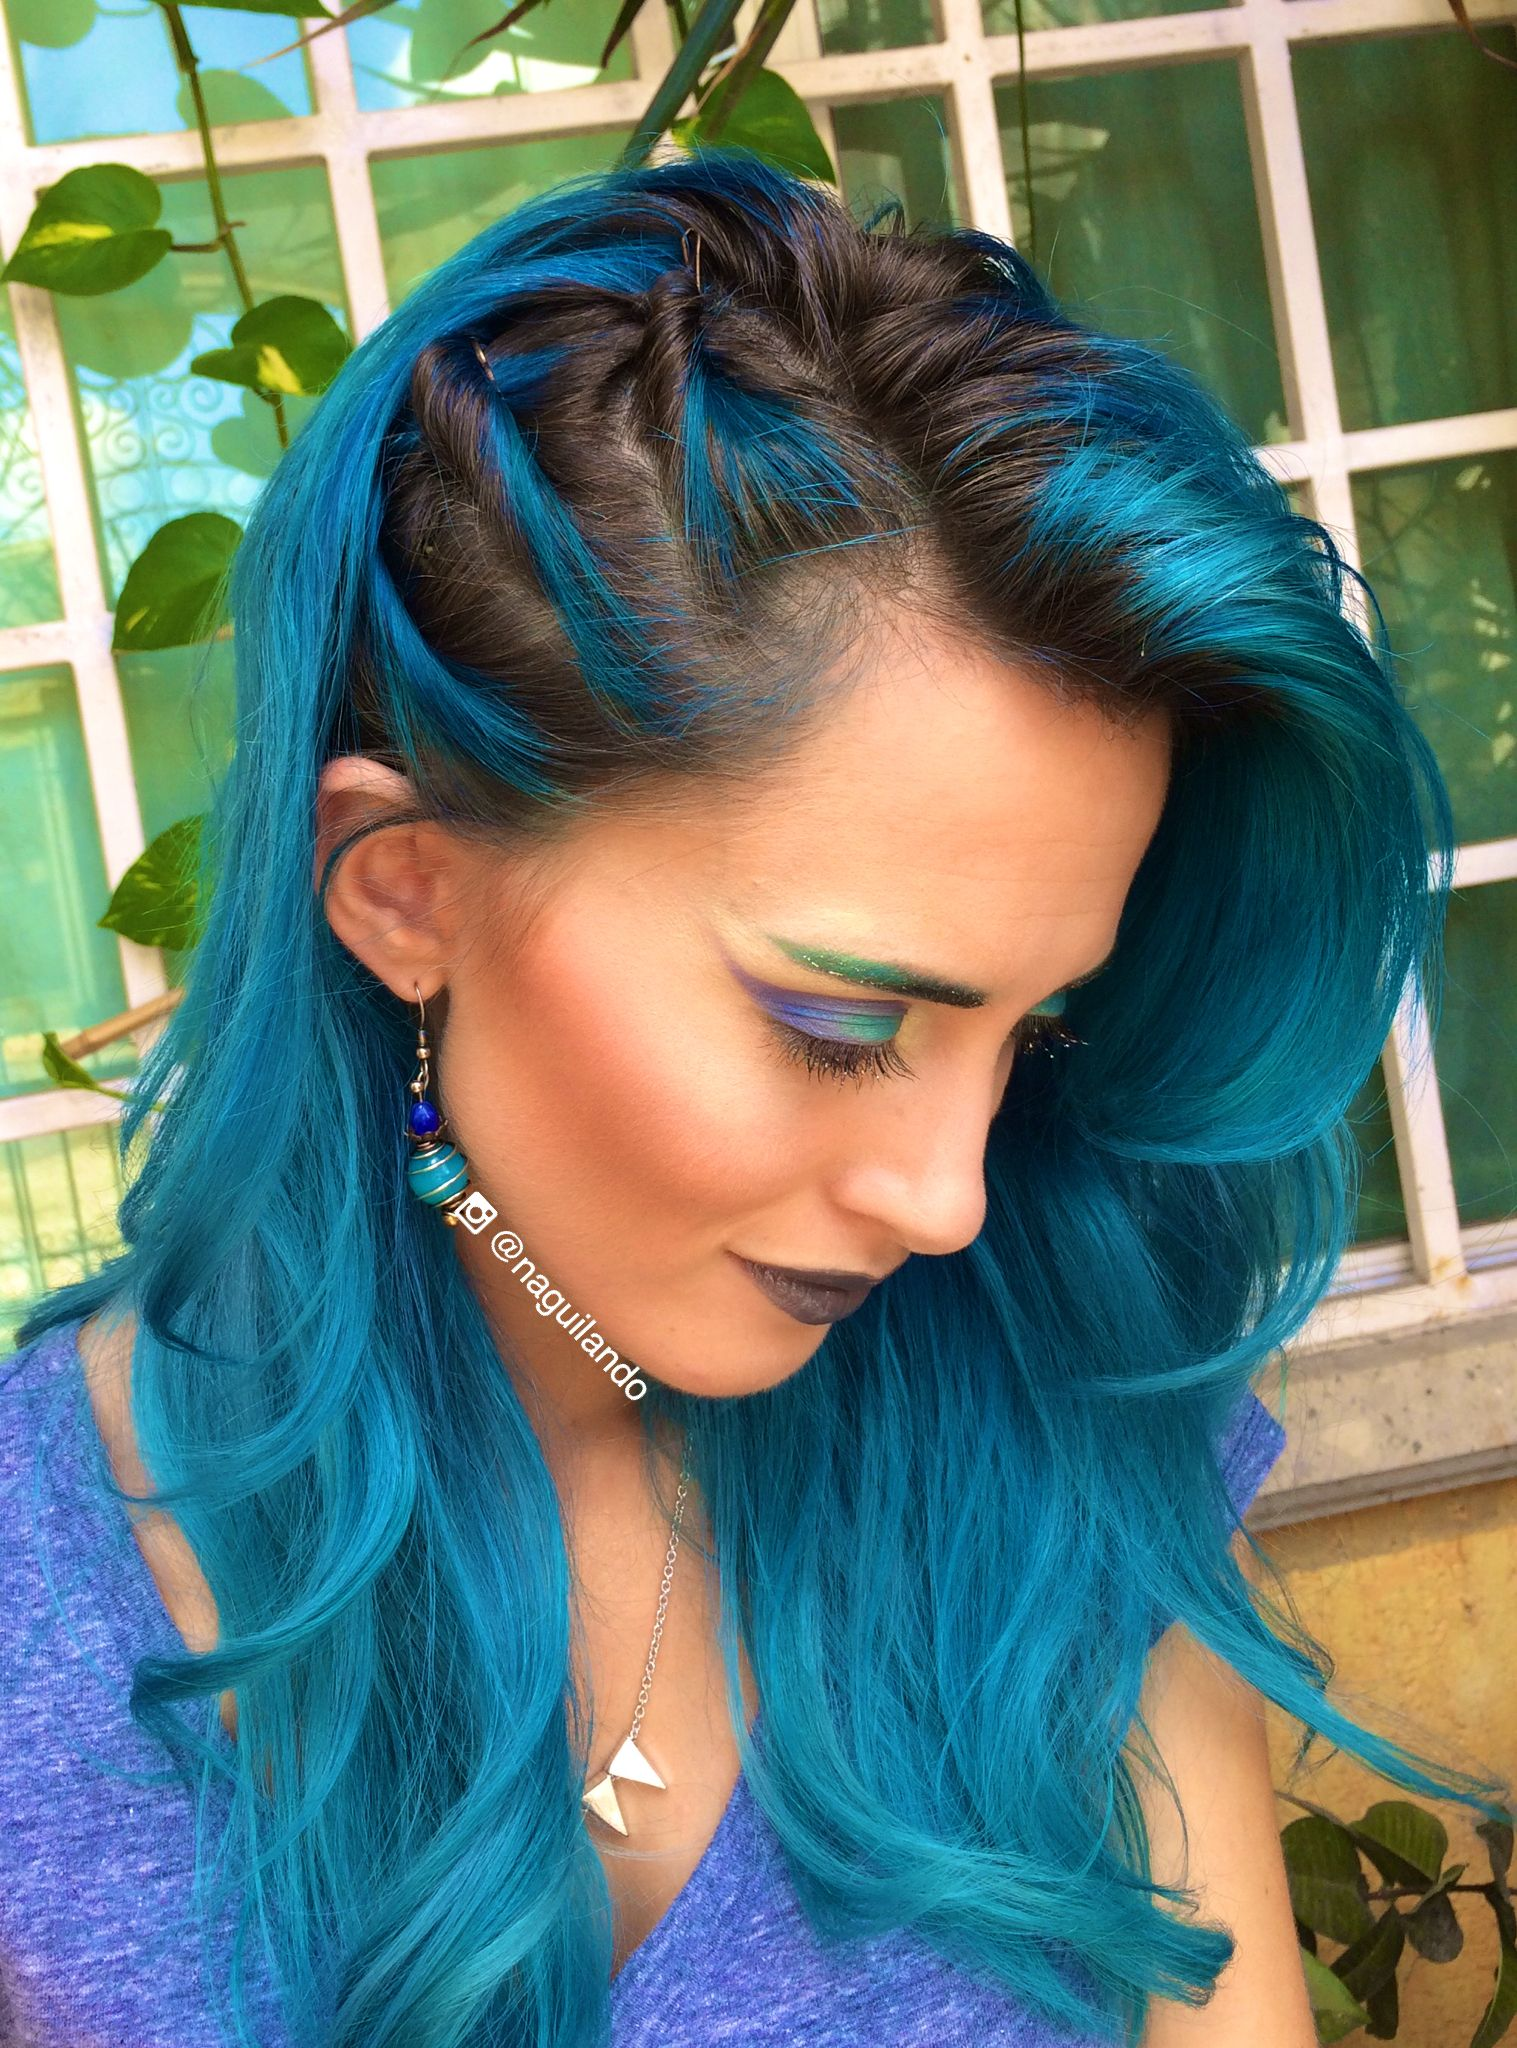 Makeup And Hair Blue Bluehair Naguilando Instagram Arctic Fox Dye In Aquamarine Lied To Prelightened Diluted With White